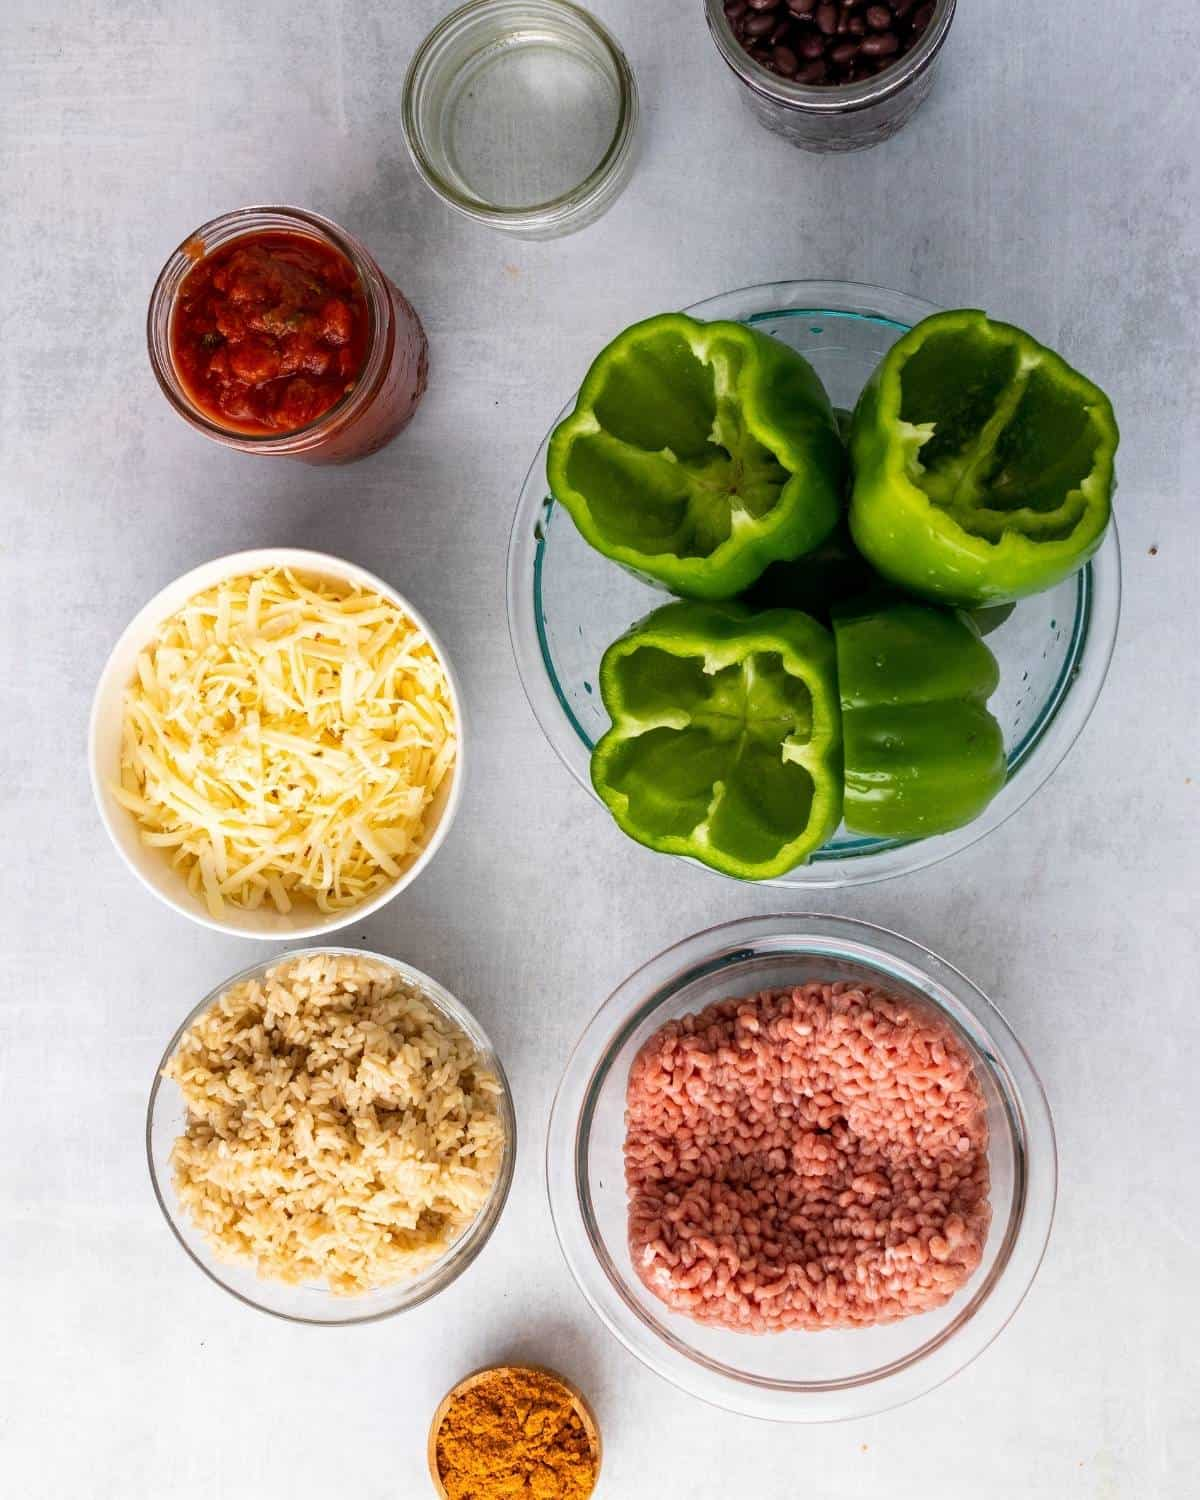 ingredients to make taco stuffed peppers